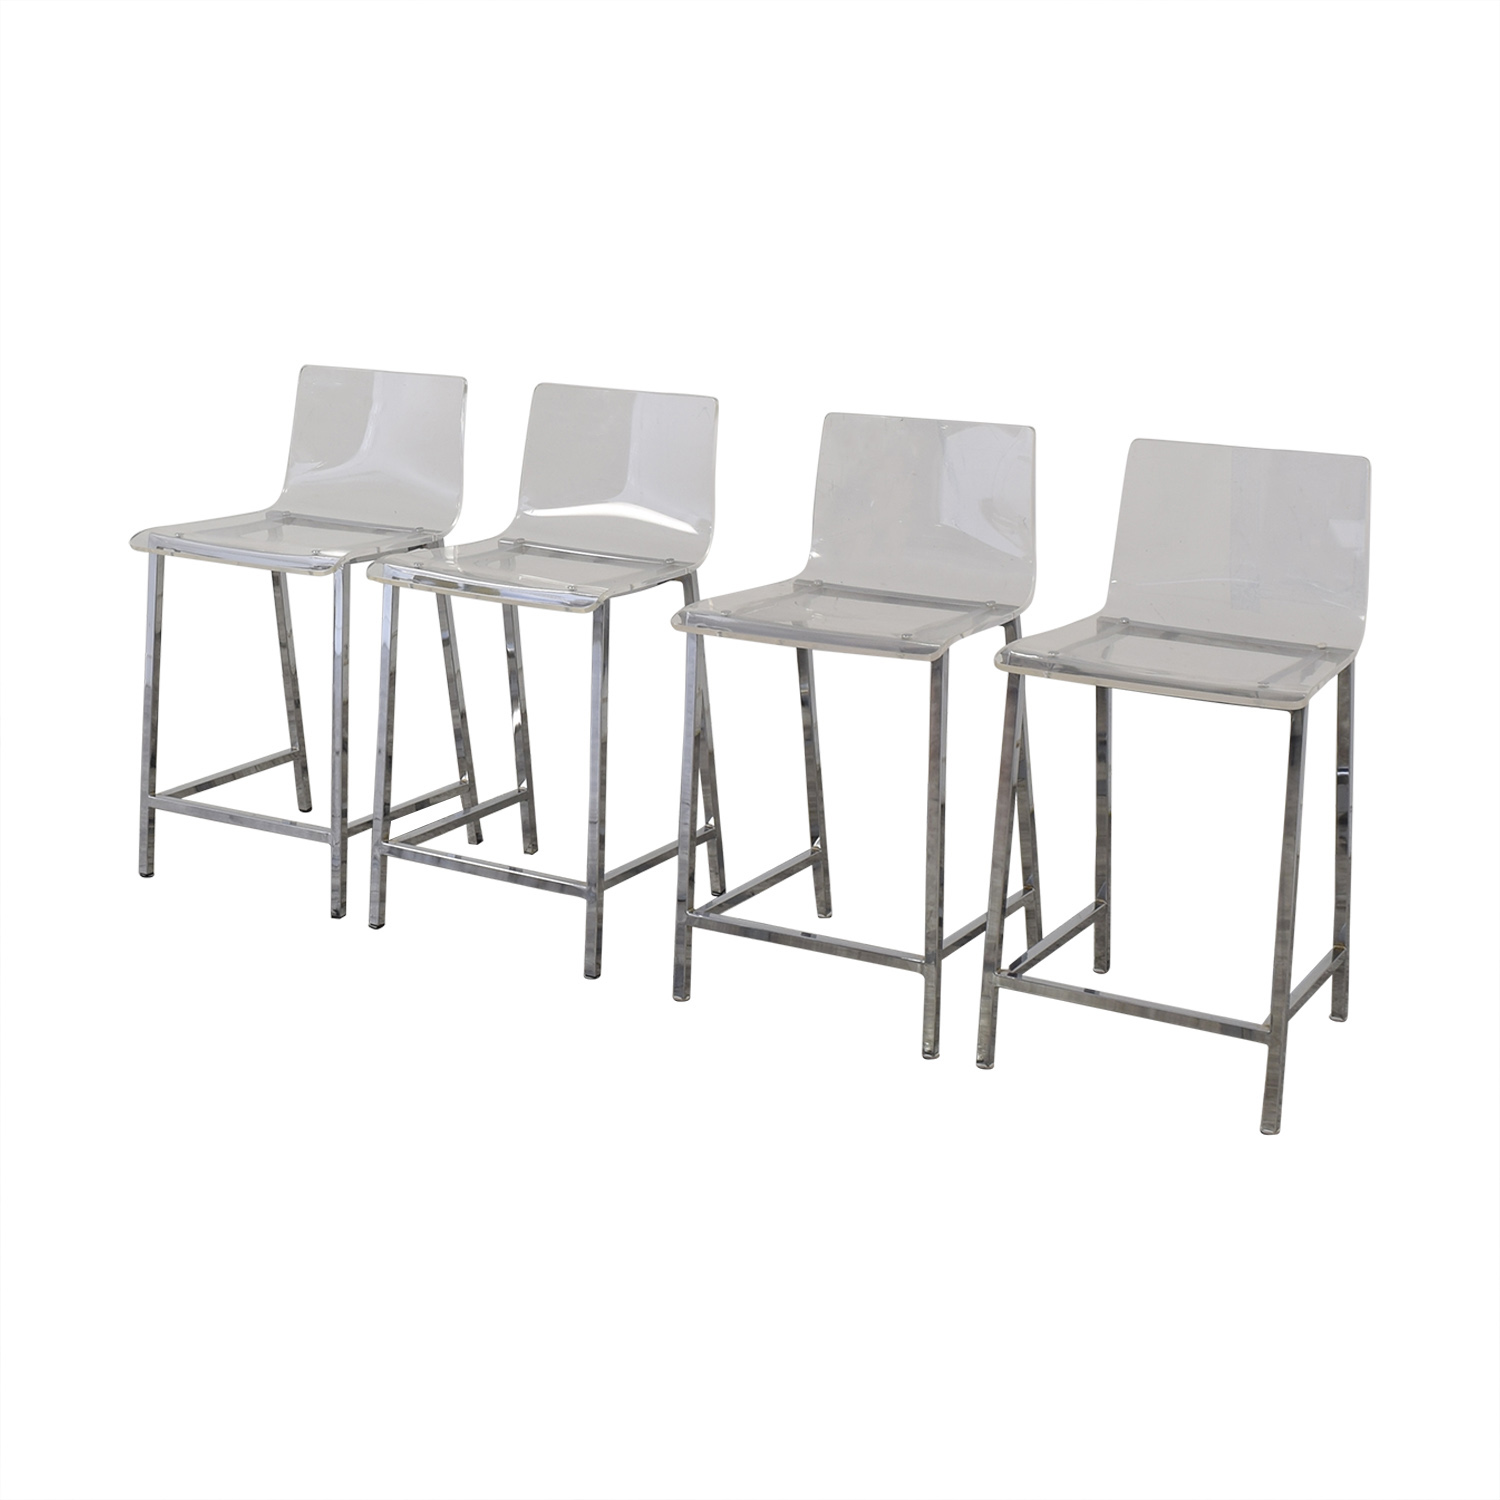 shop CB2 Chiaro Clear Counter Stool CB2 Stools